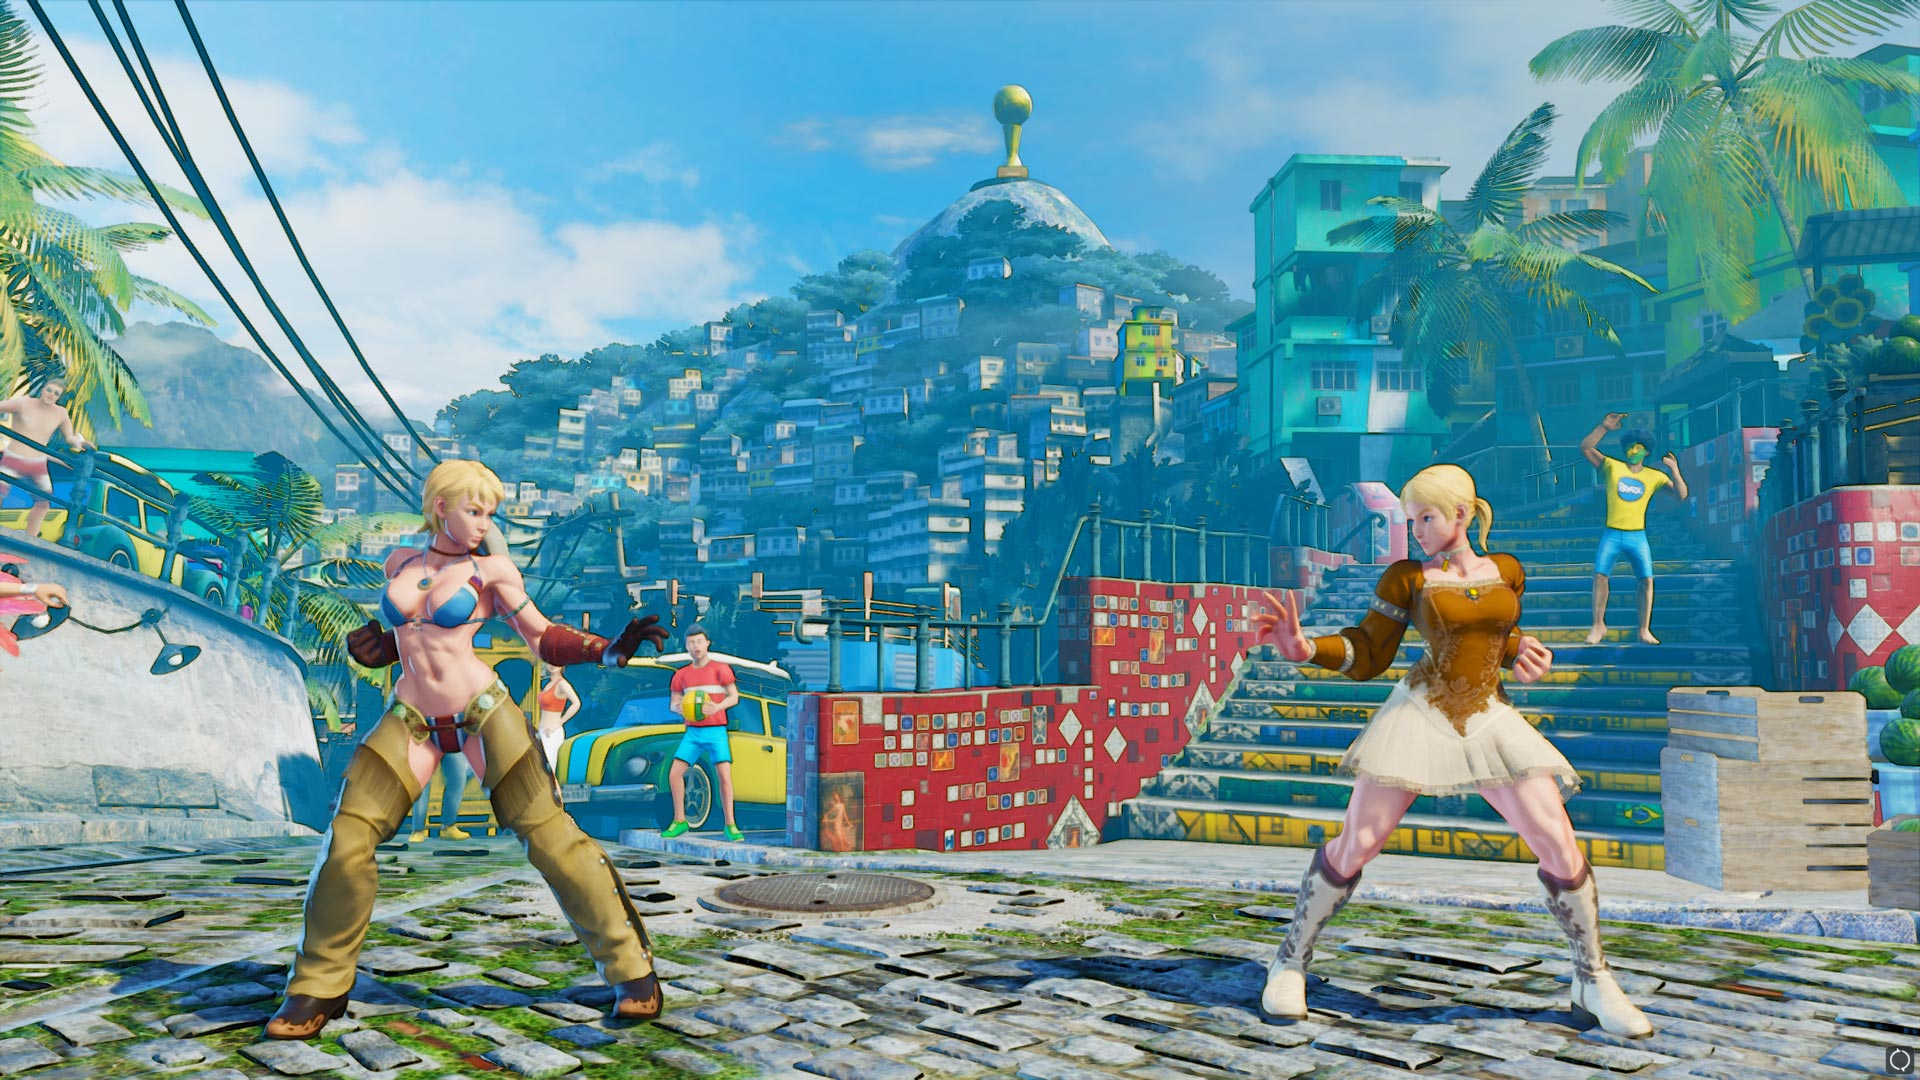 Cammy's Fiona costume colors 1 out of 6 image gallery